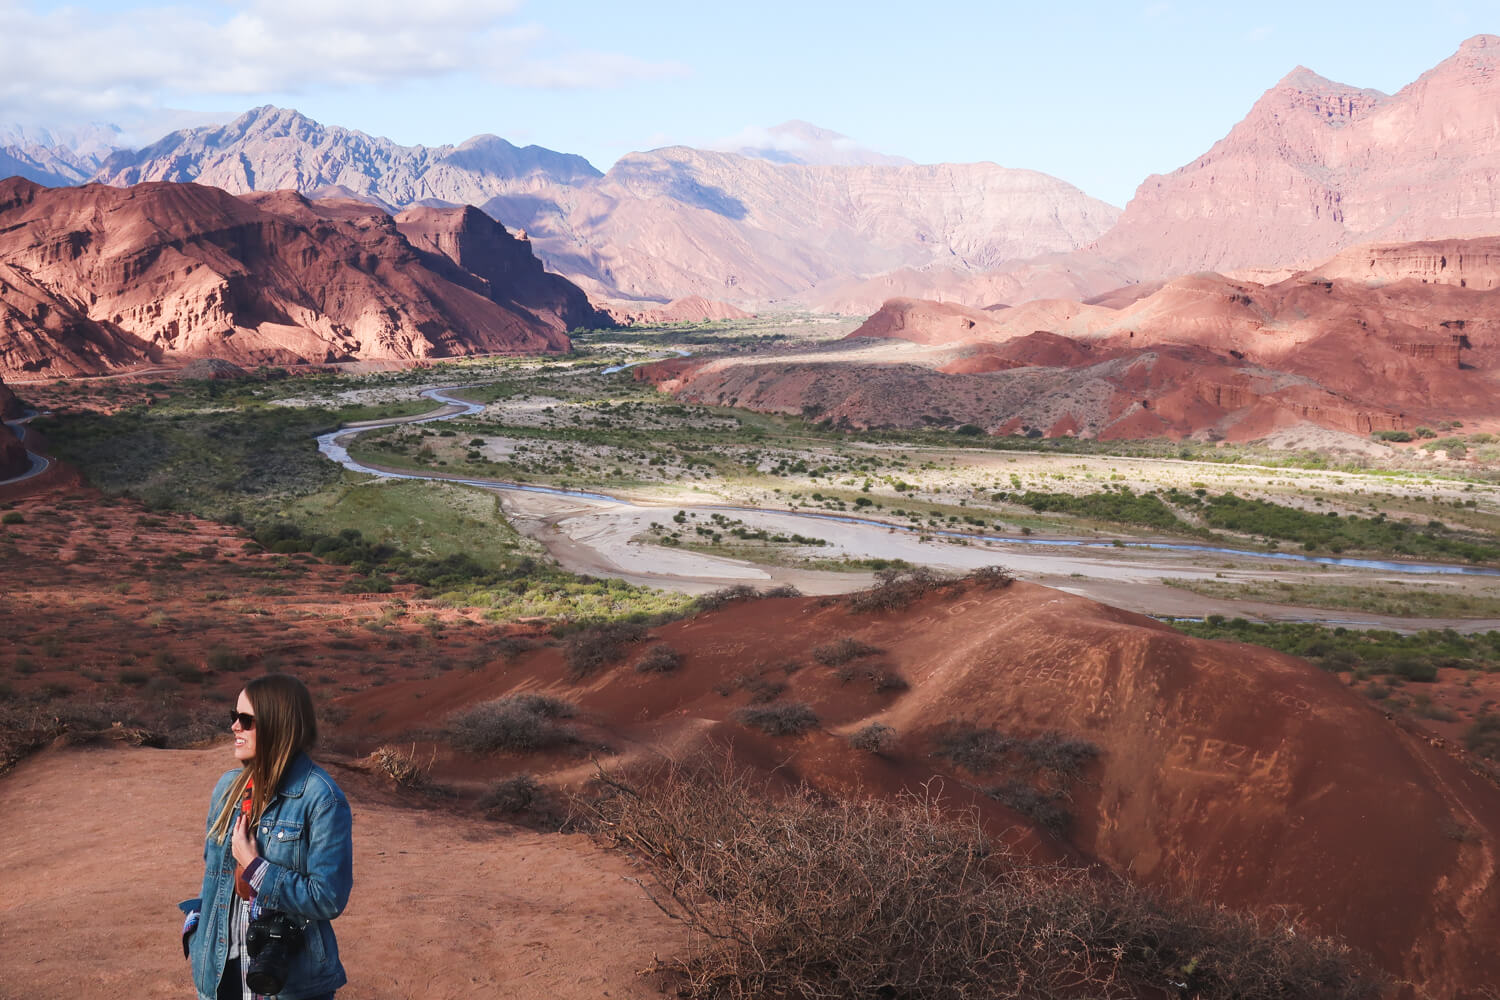 Day trips from Cafayate include the Quebrada de las Conchas